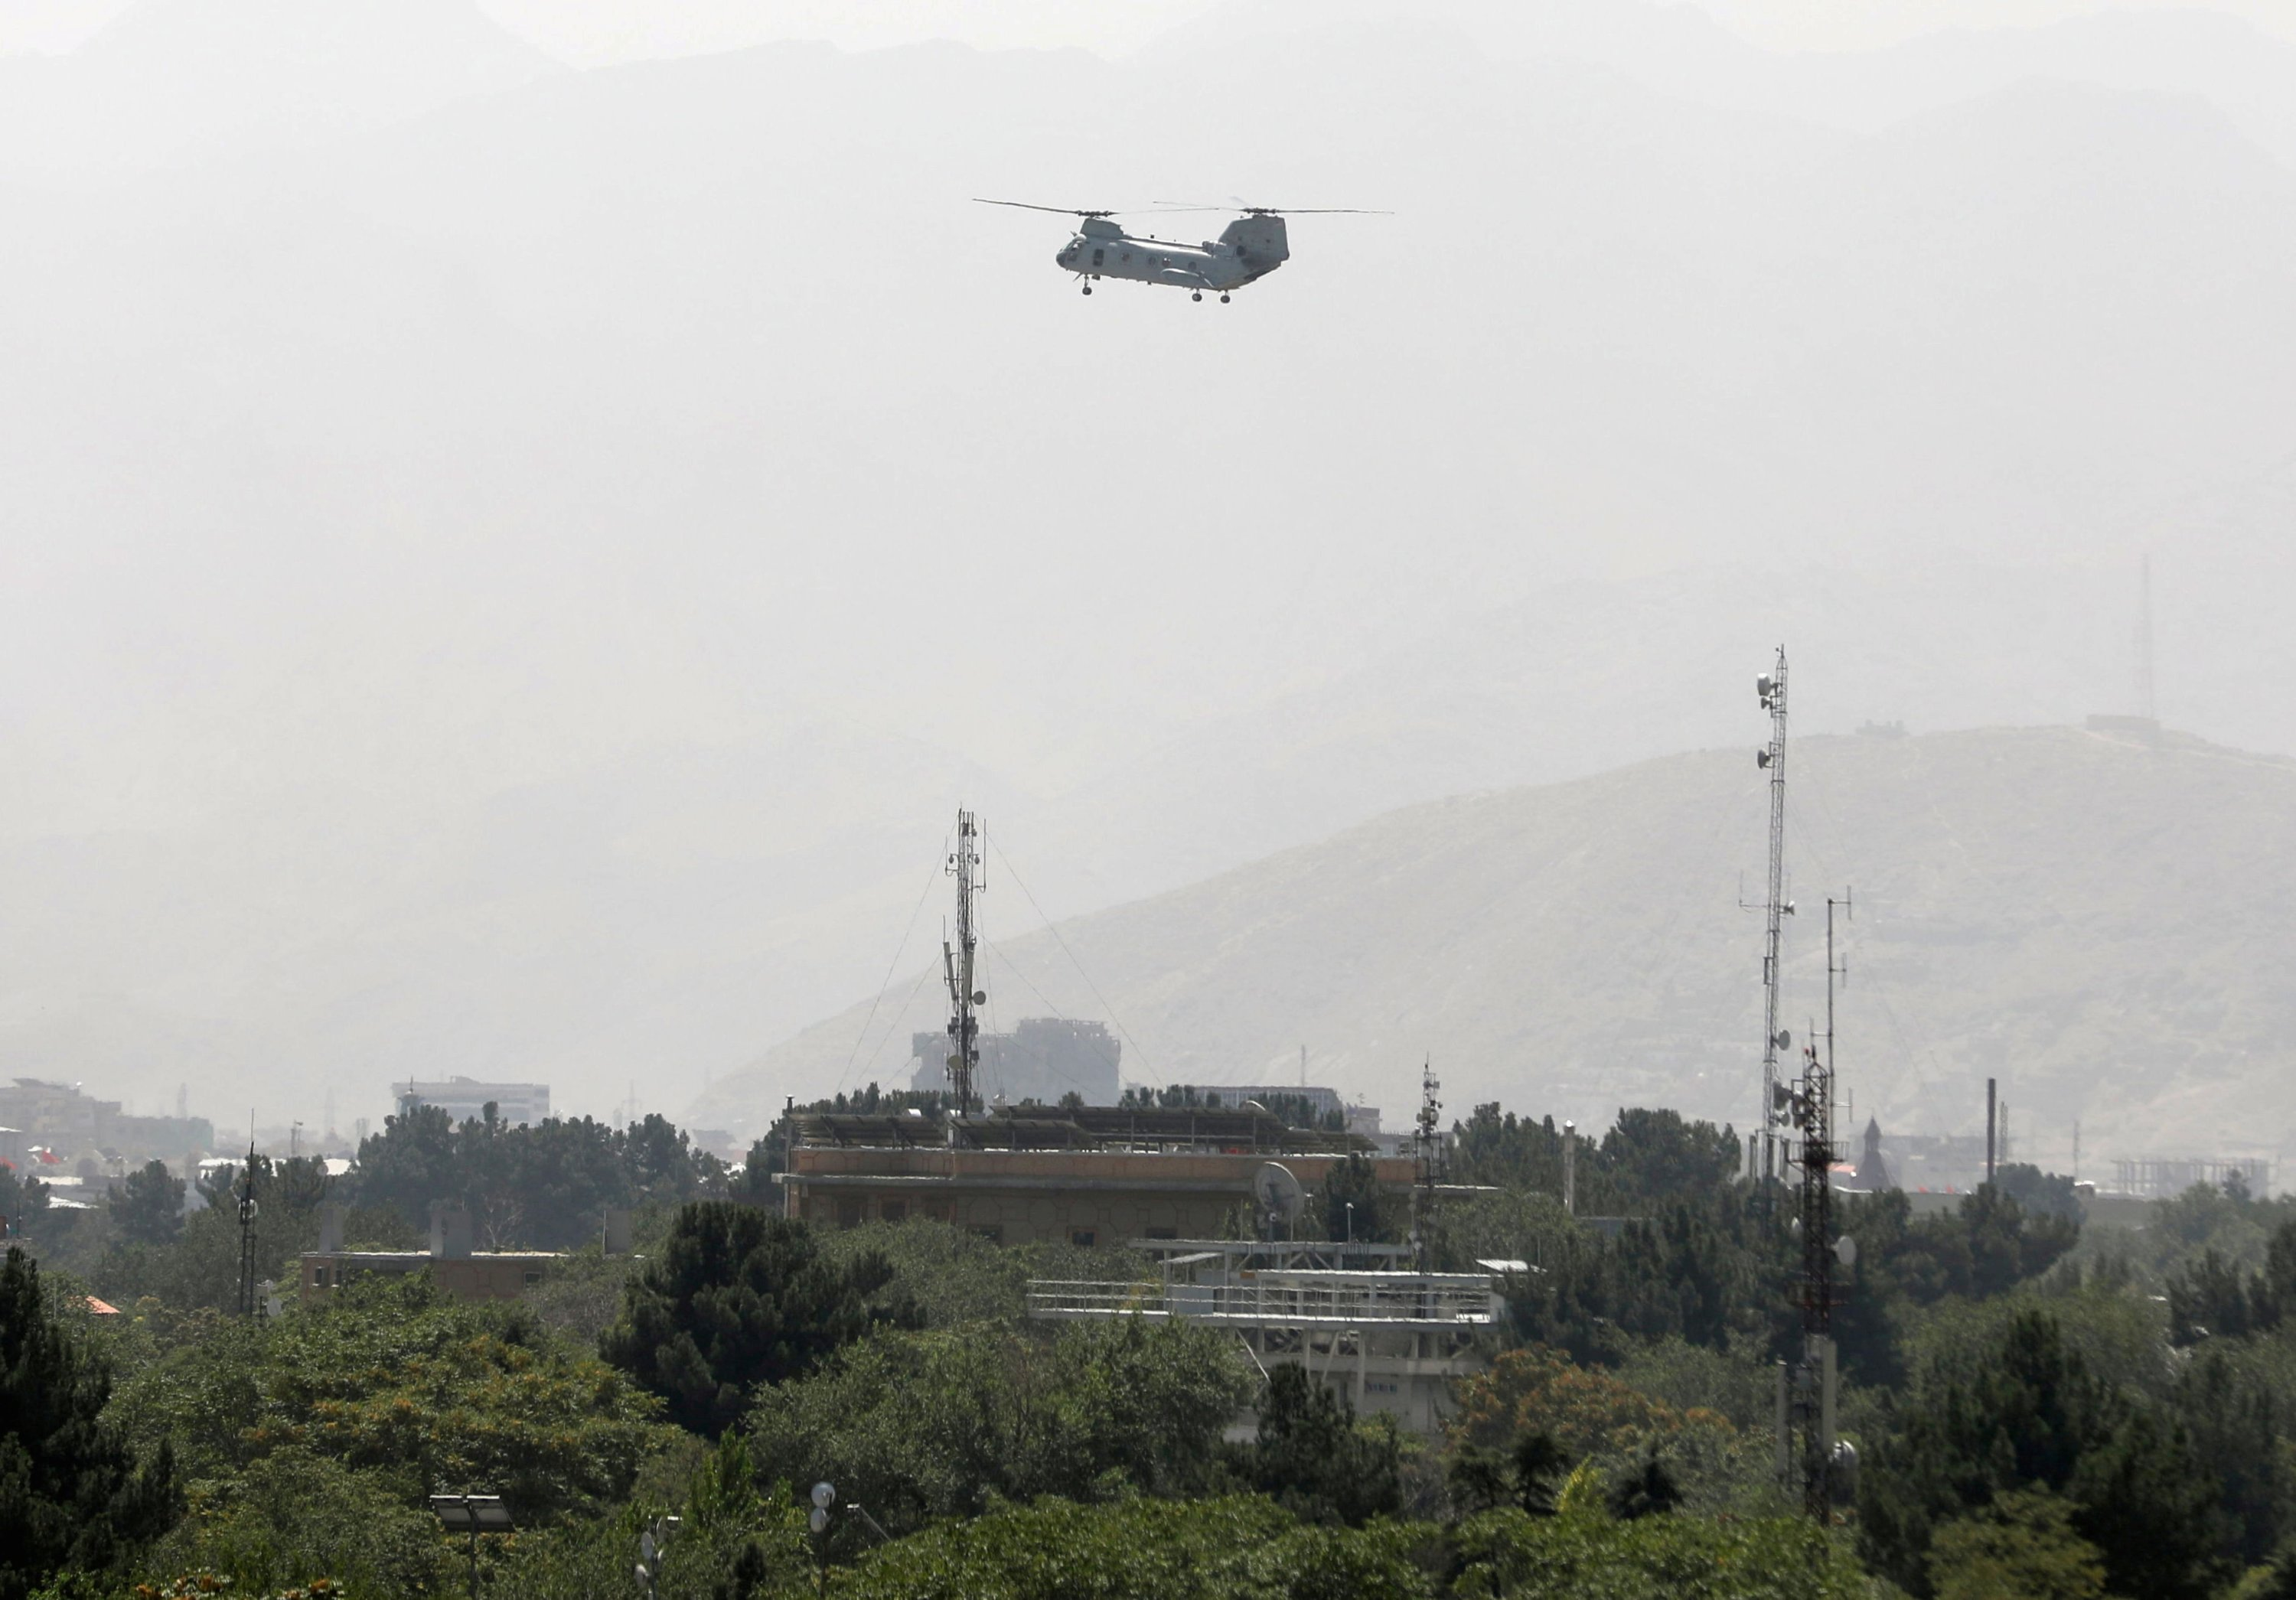 CH-46 Sea Knight military transport helicopter flies over Kabul, Afghanistan, Aug. 15, 2021. (REUTERS Photo)